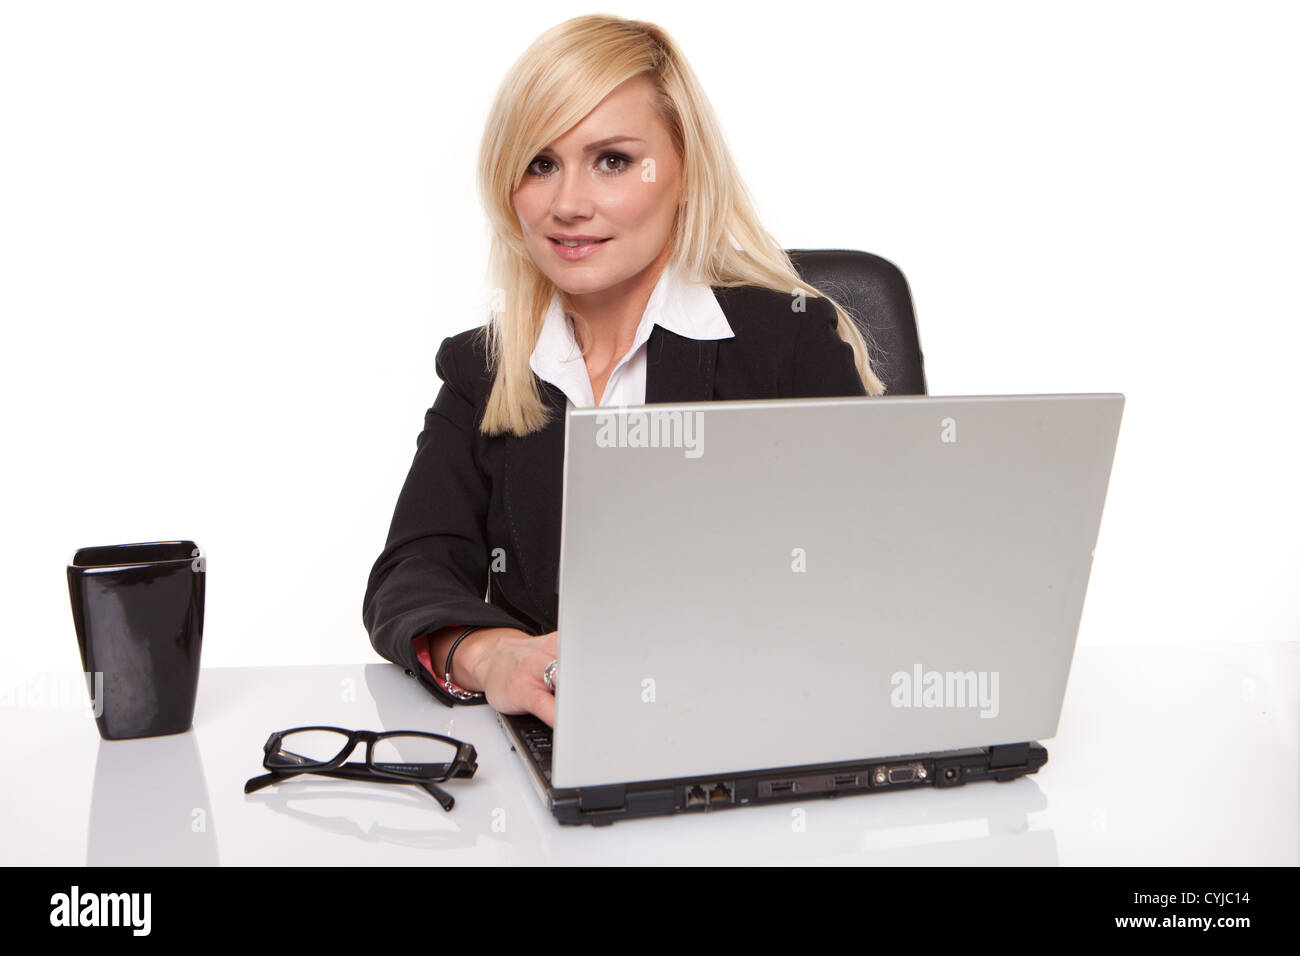 Efficient blonde businesswoman working on her laptop with her spectacles on the table alongside her - Stock Image